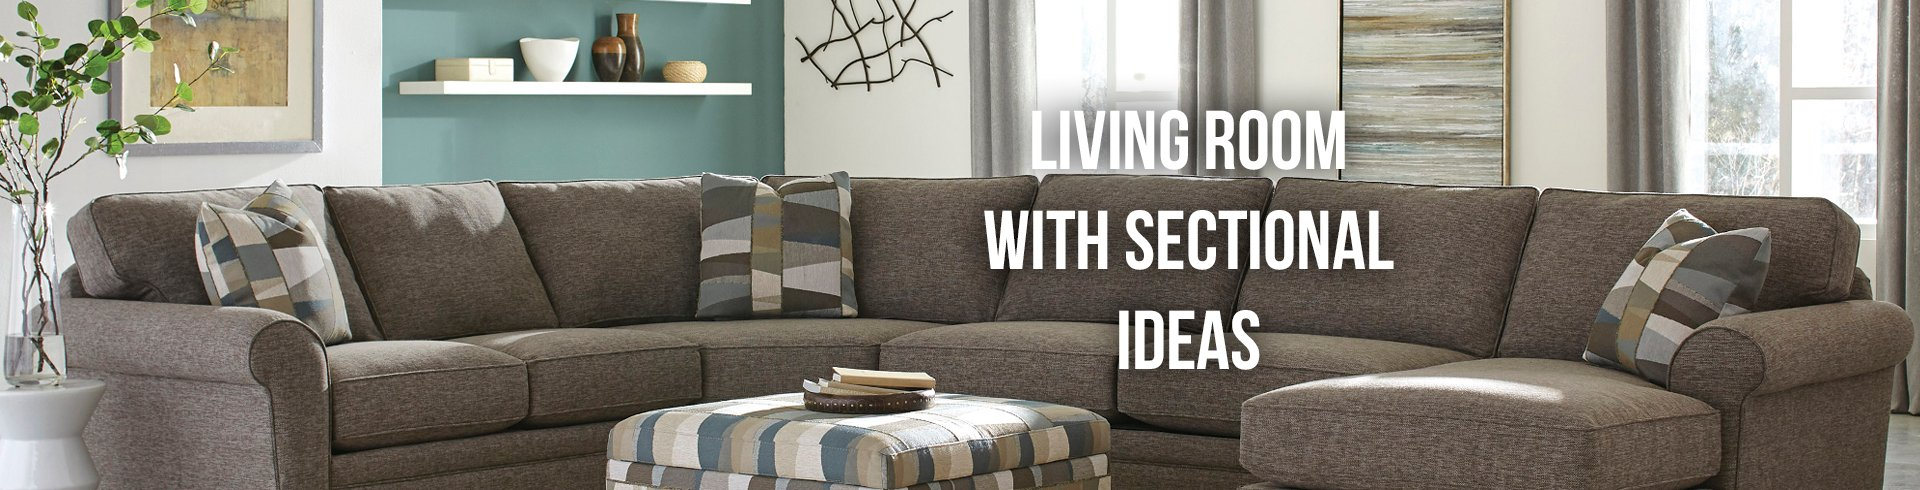 Living Room with Sectional Ideas | RC Willey Blog